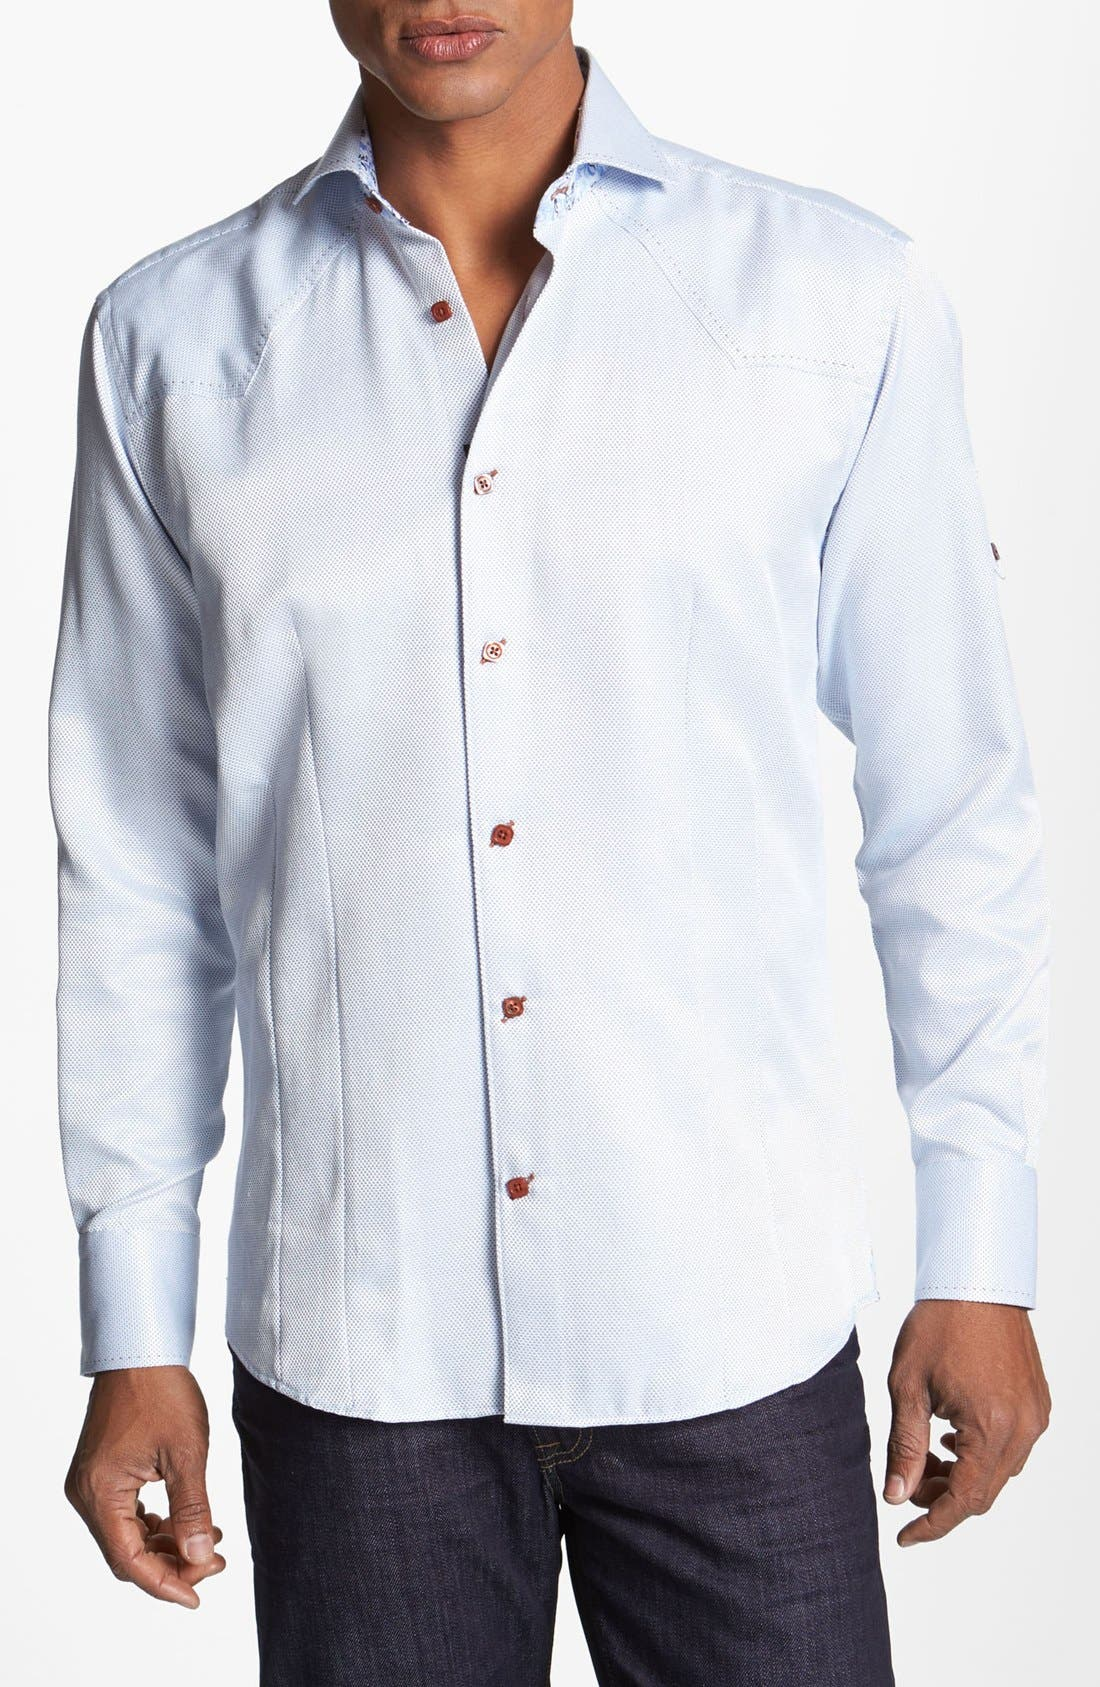 Alternate Image 1 Selected - Bogosse 'Matt' Trim Fit Sport Shirt